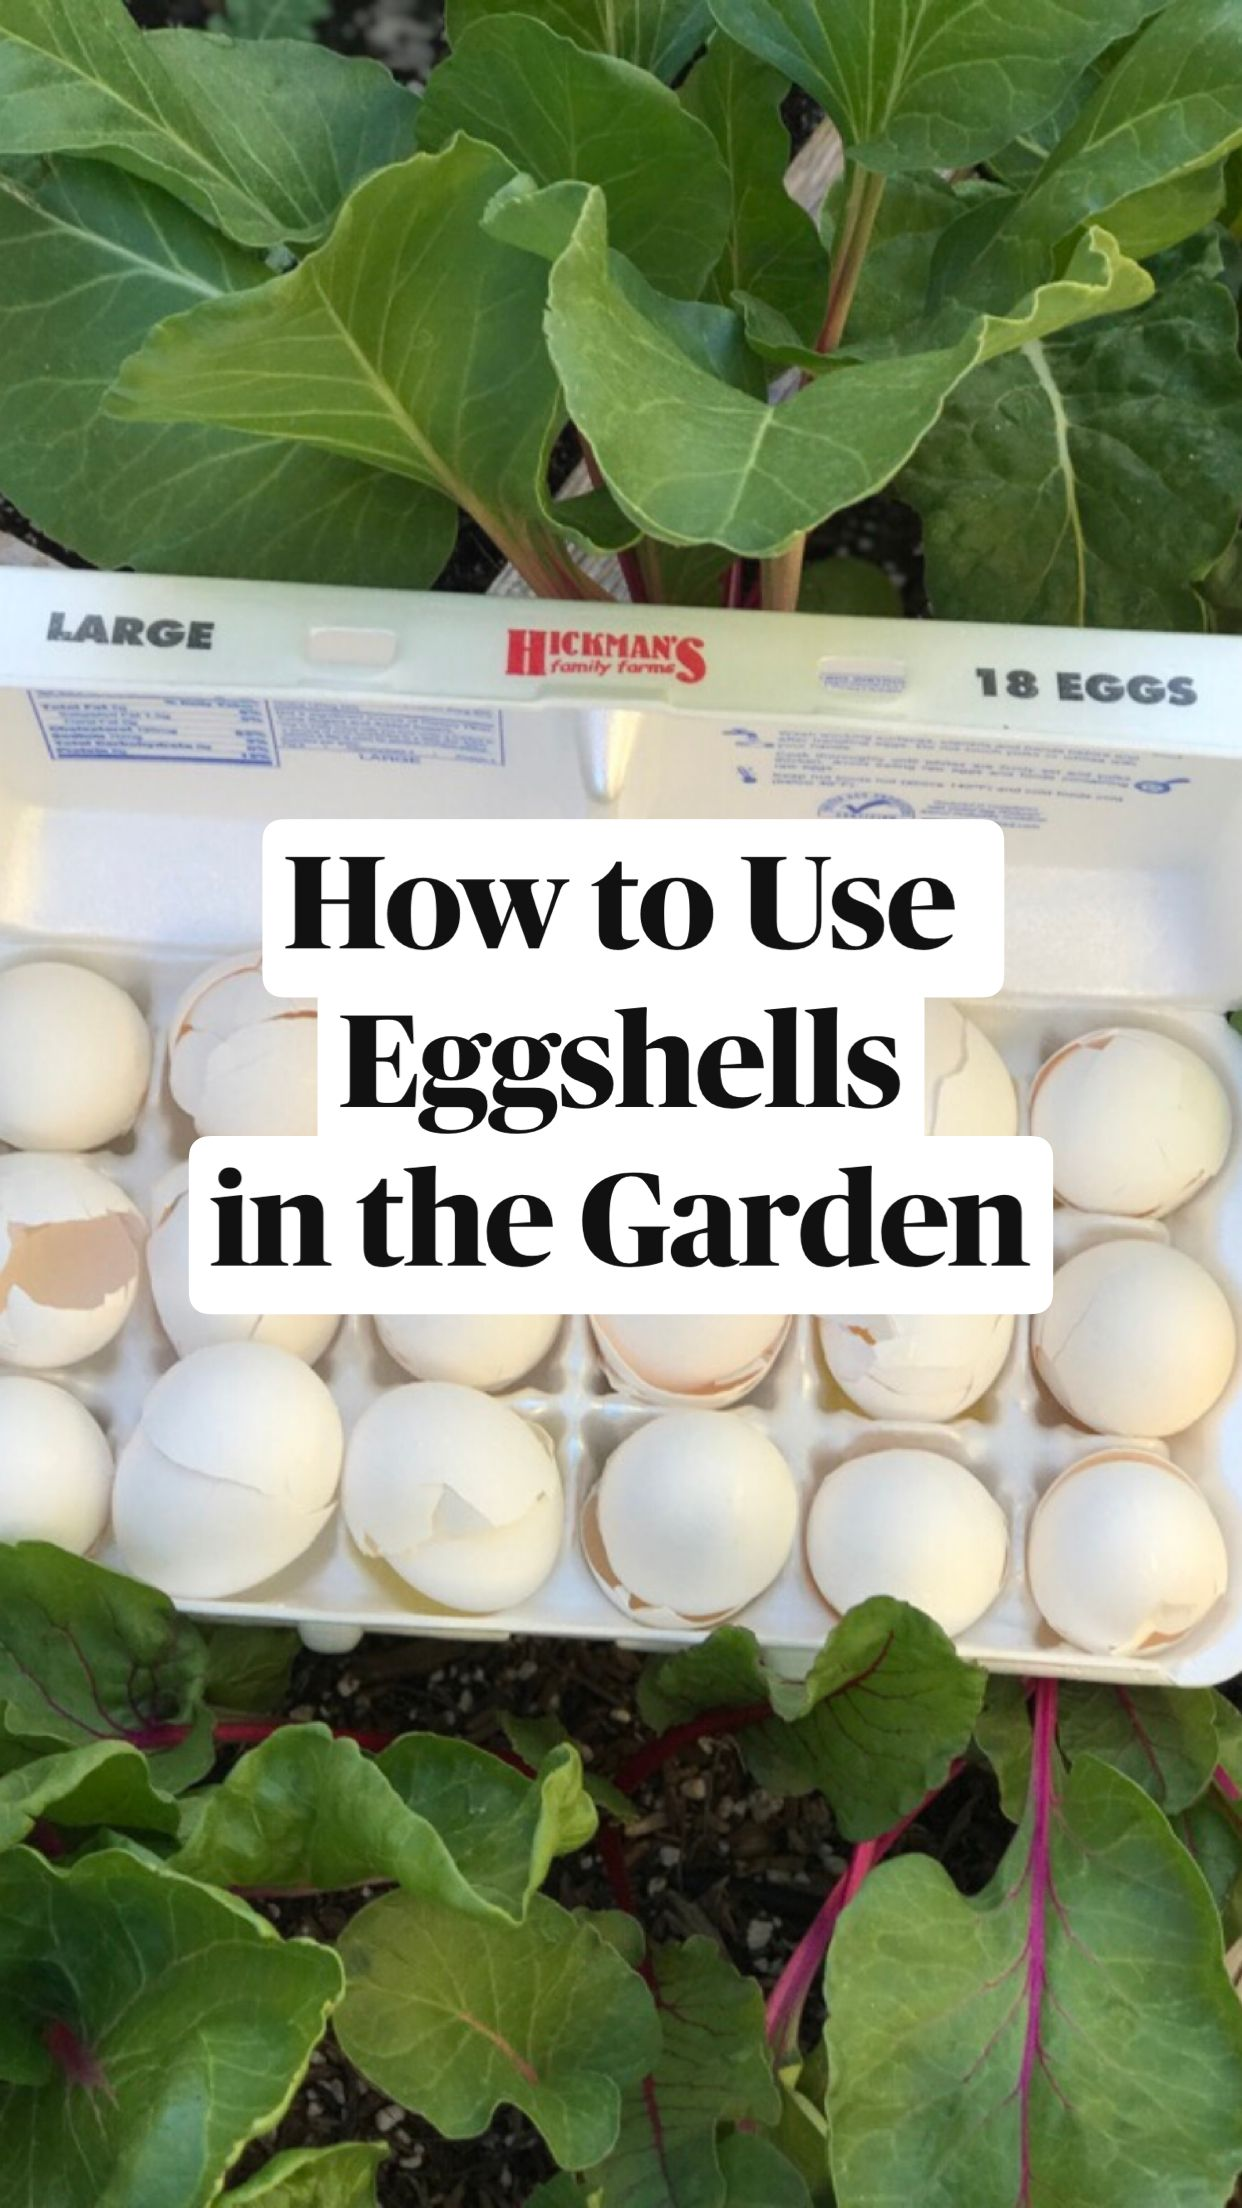 How to Use Eggshells in the Garden